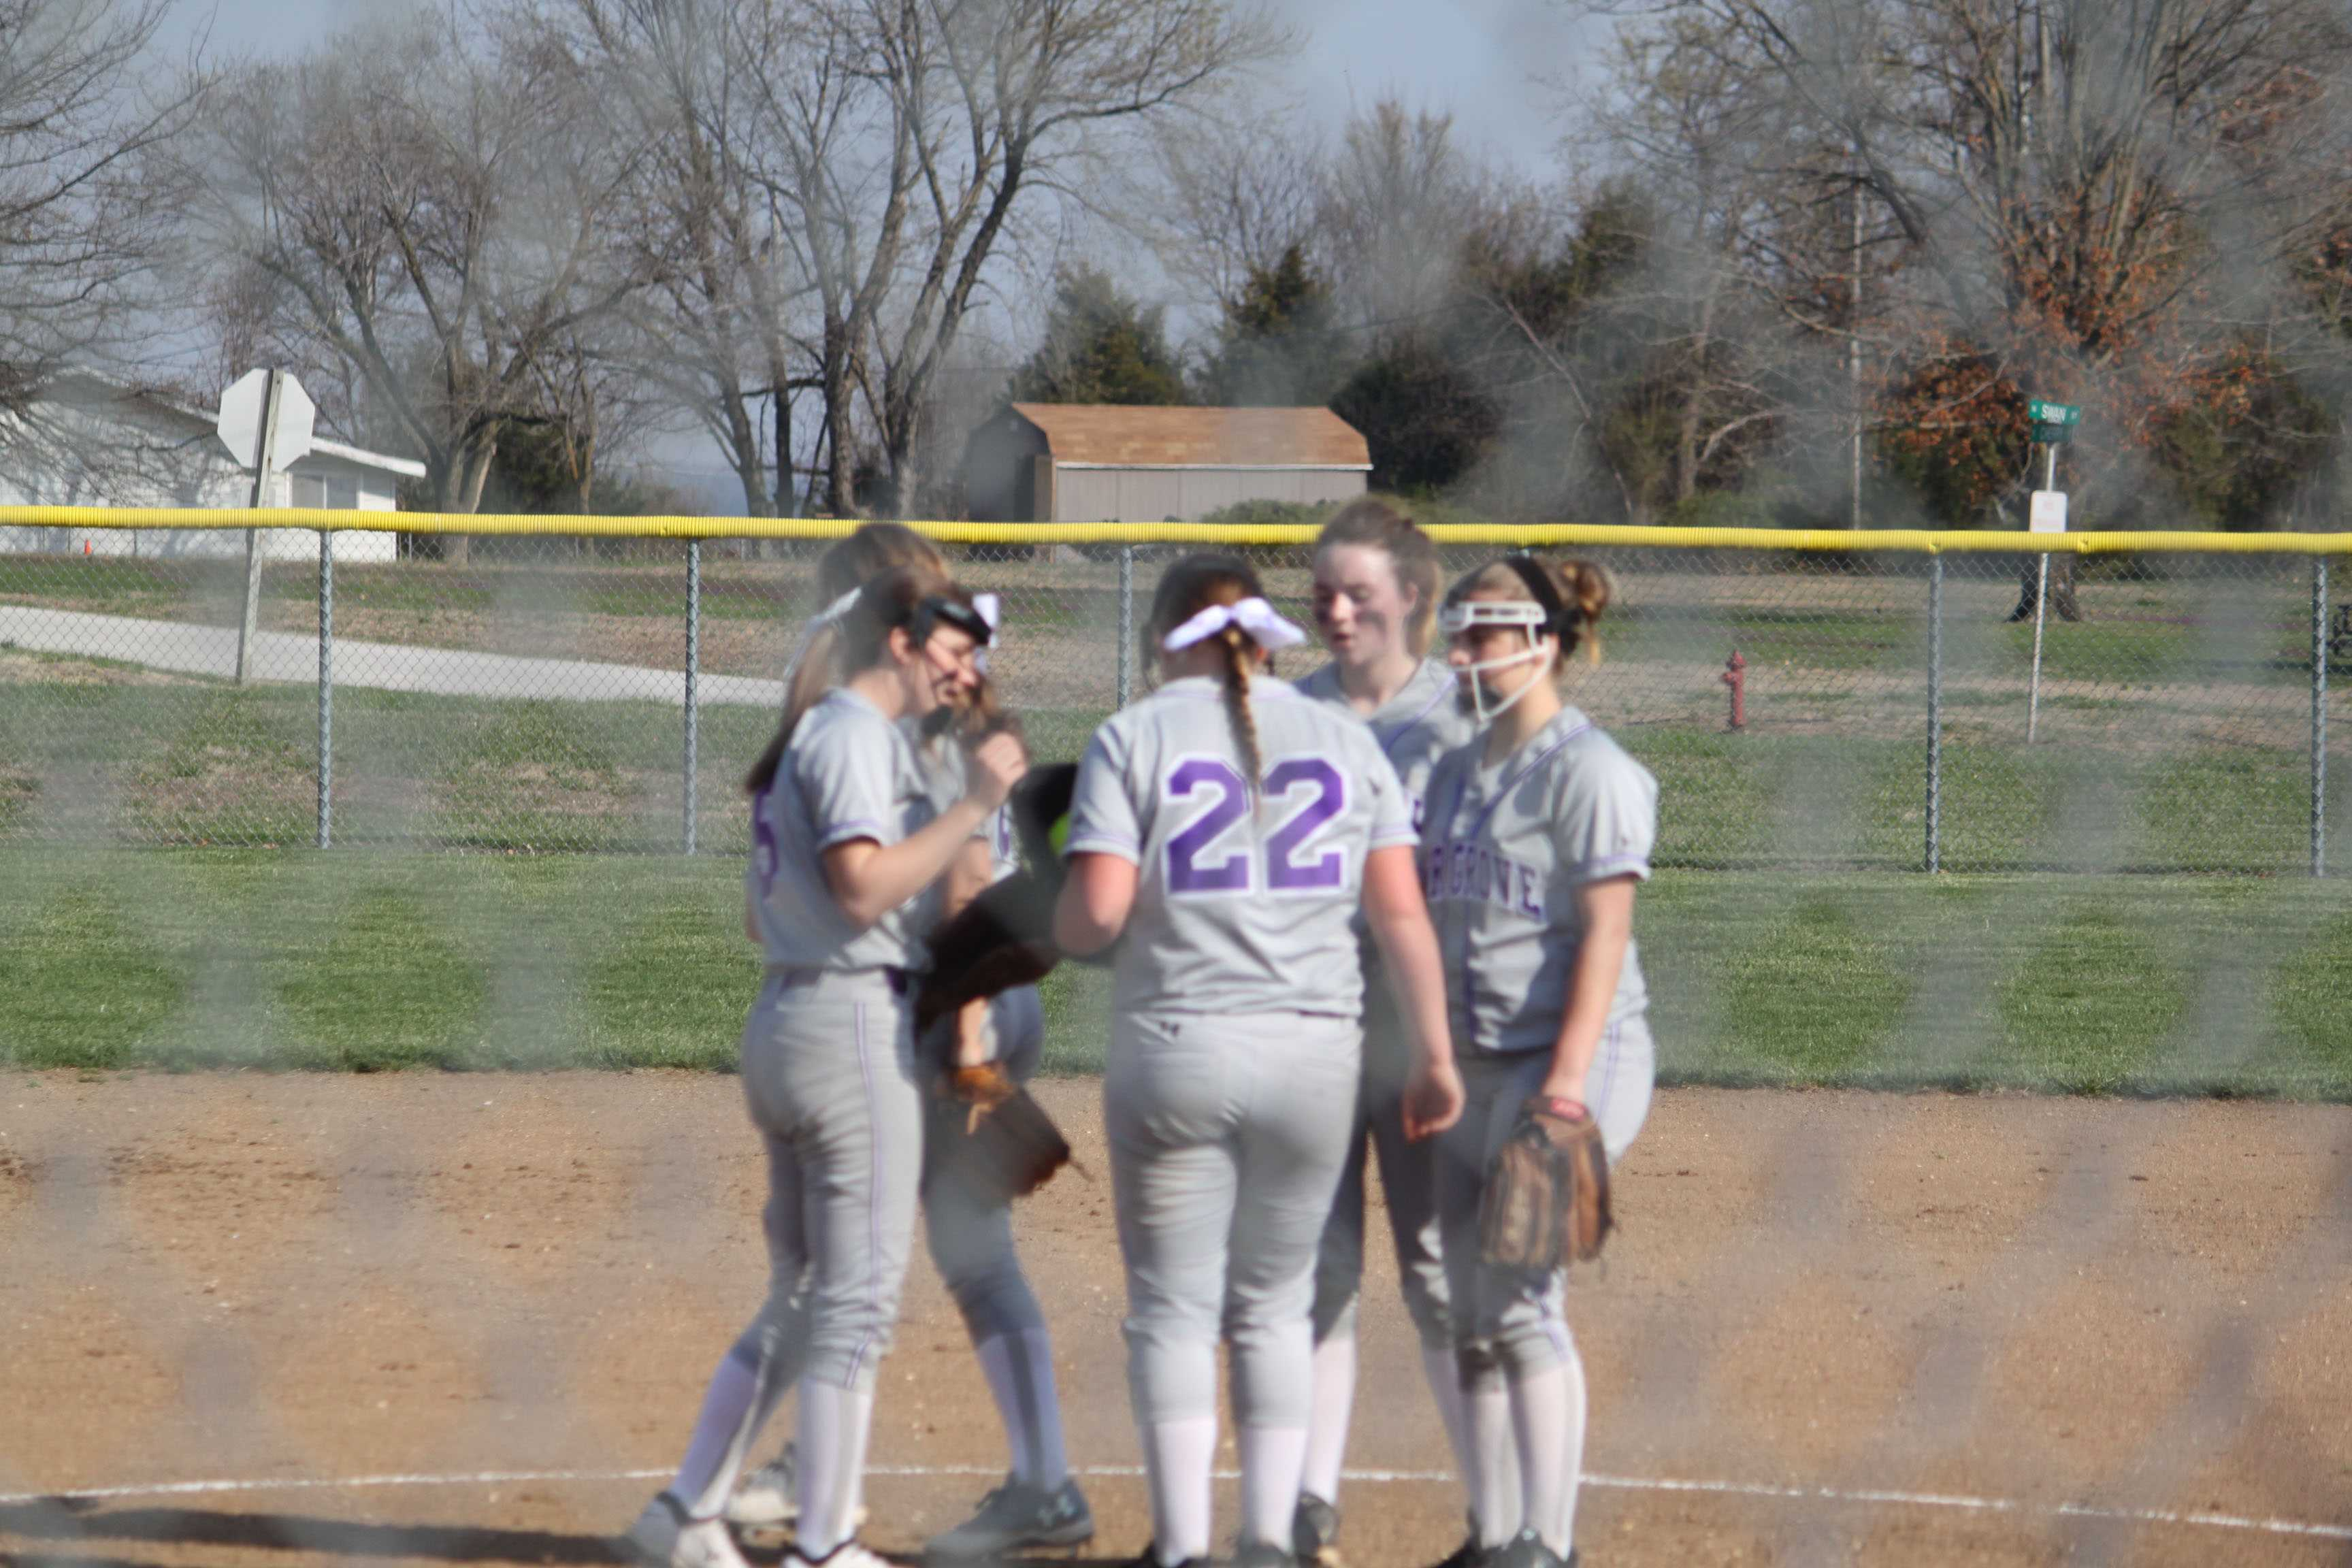 Lady eagles huddle up before taking the field